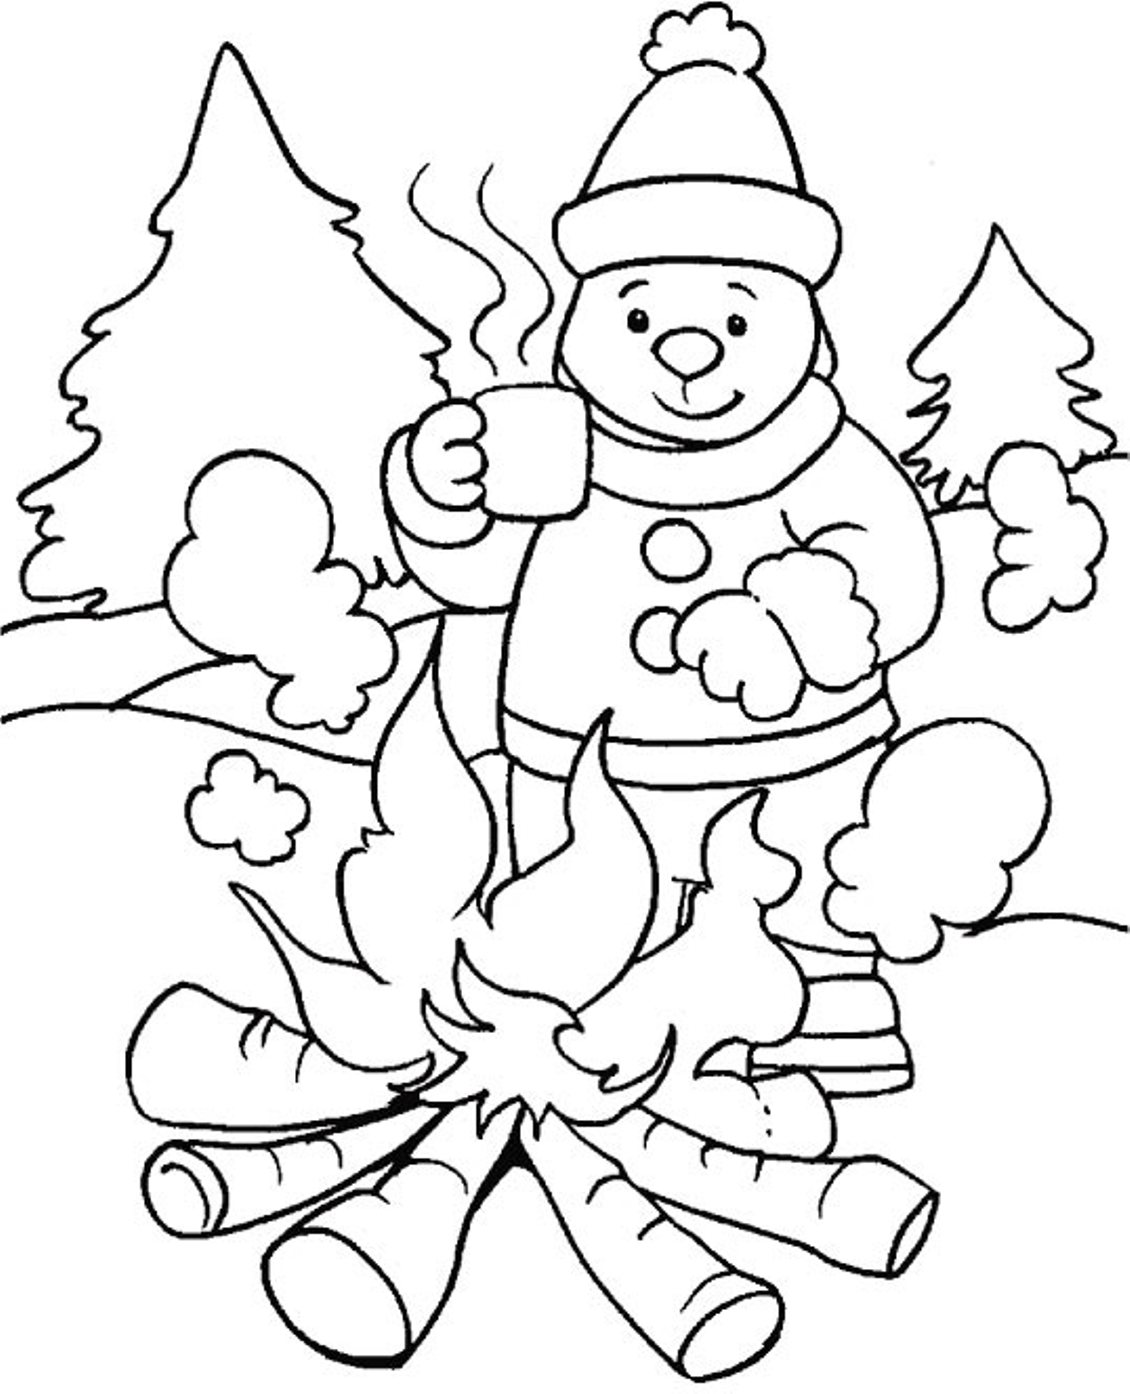 winter animal coloring pages squirrel preparing for winter super coloring with animal coloring winter pages